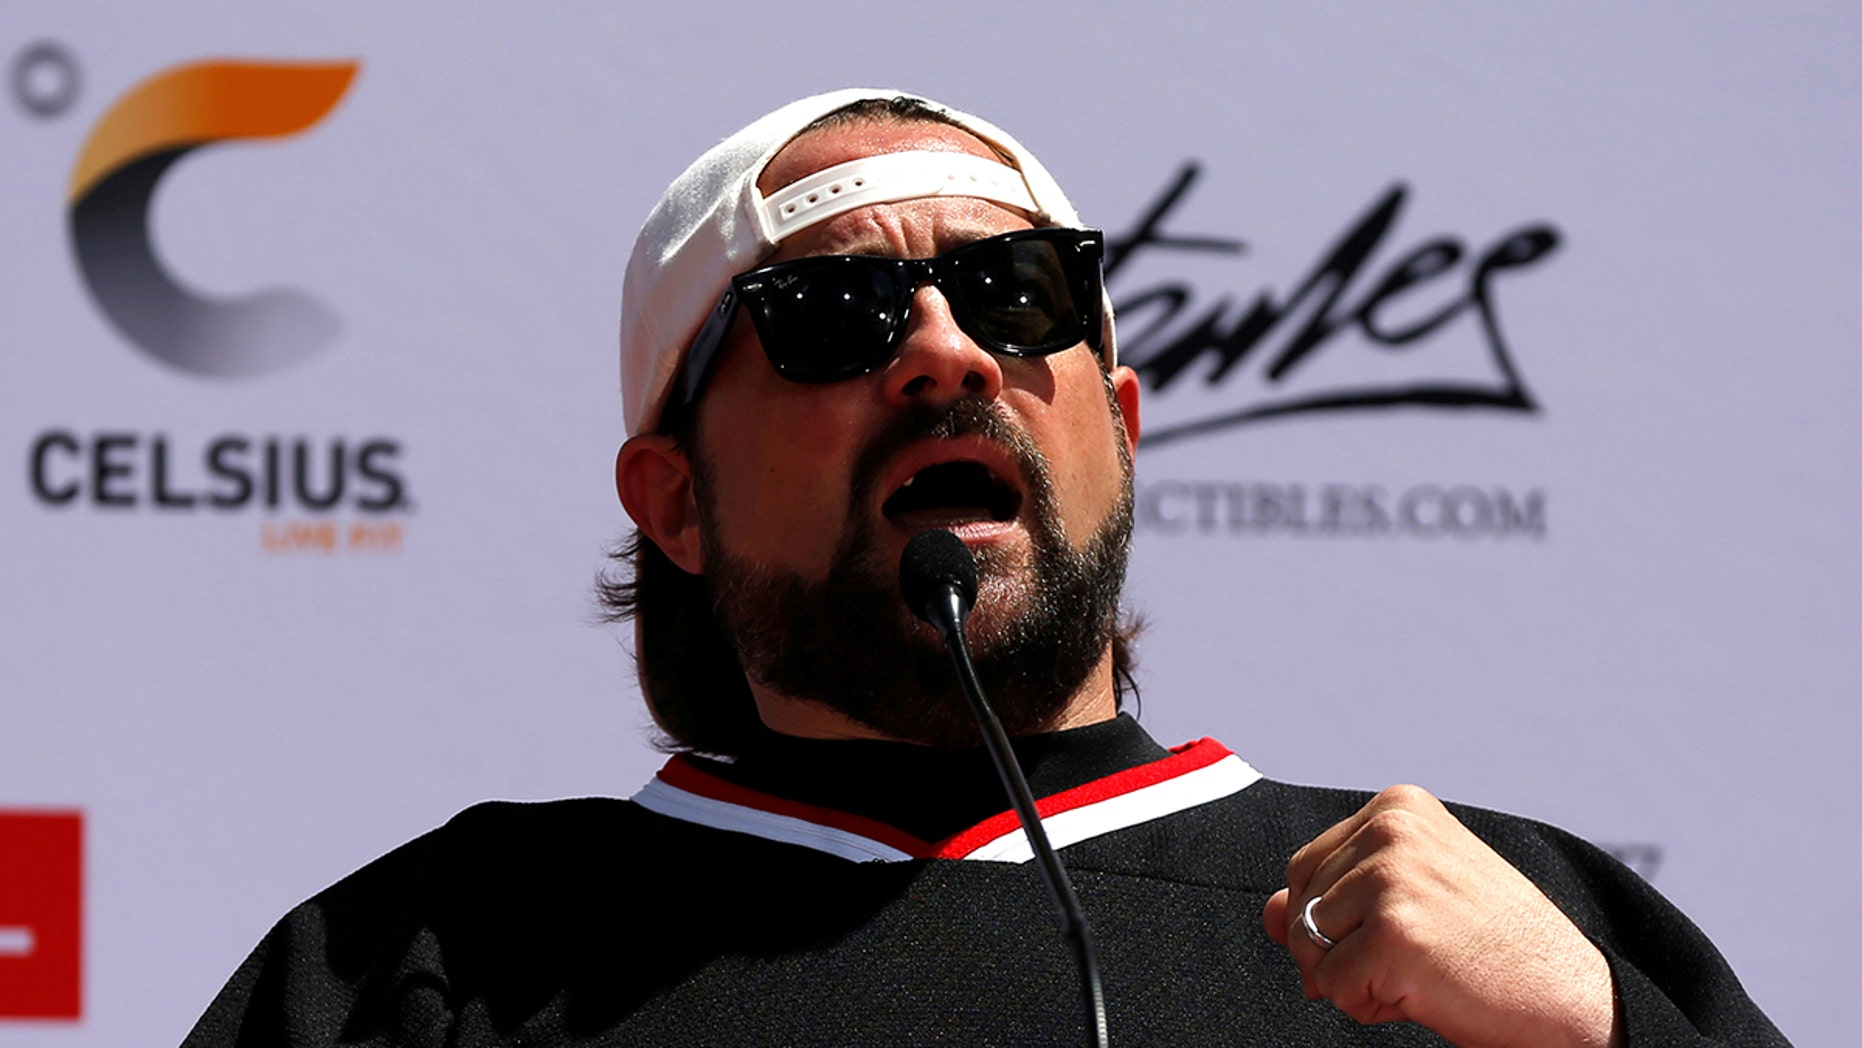 Director Kevin Smith speaks at a ceremony for Marvel co-creator Stan Lee to place his handprints, footprints and signature in cement in the forecourt of the TCL Chinese theatre in Los Angeles, California, U.S., July 18, 2017.   REUTERS/Mario Anzuoni - RC1FA799CC00